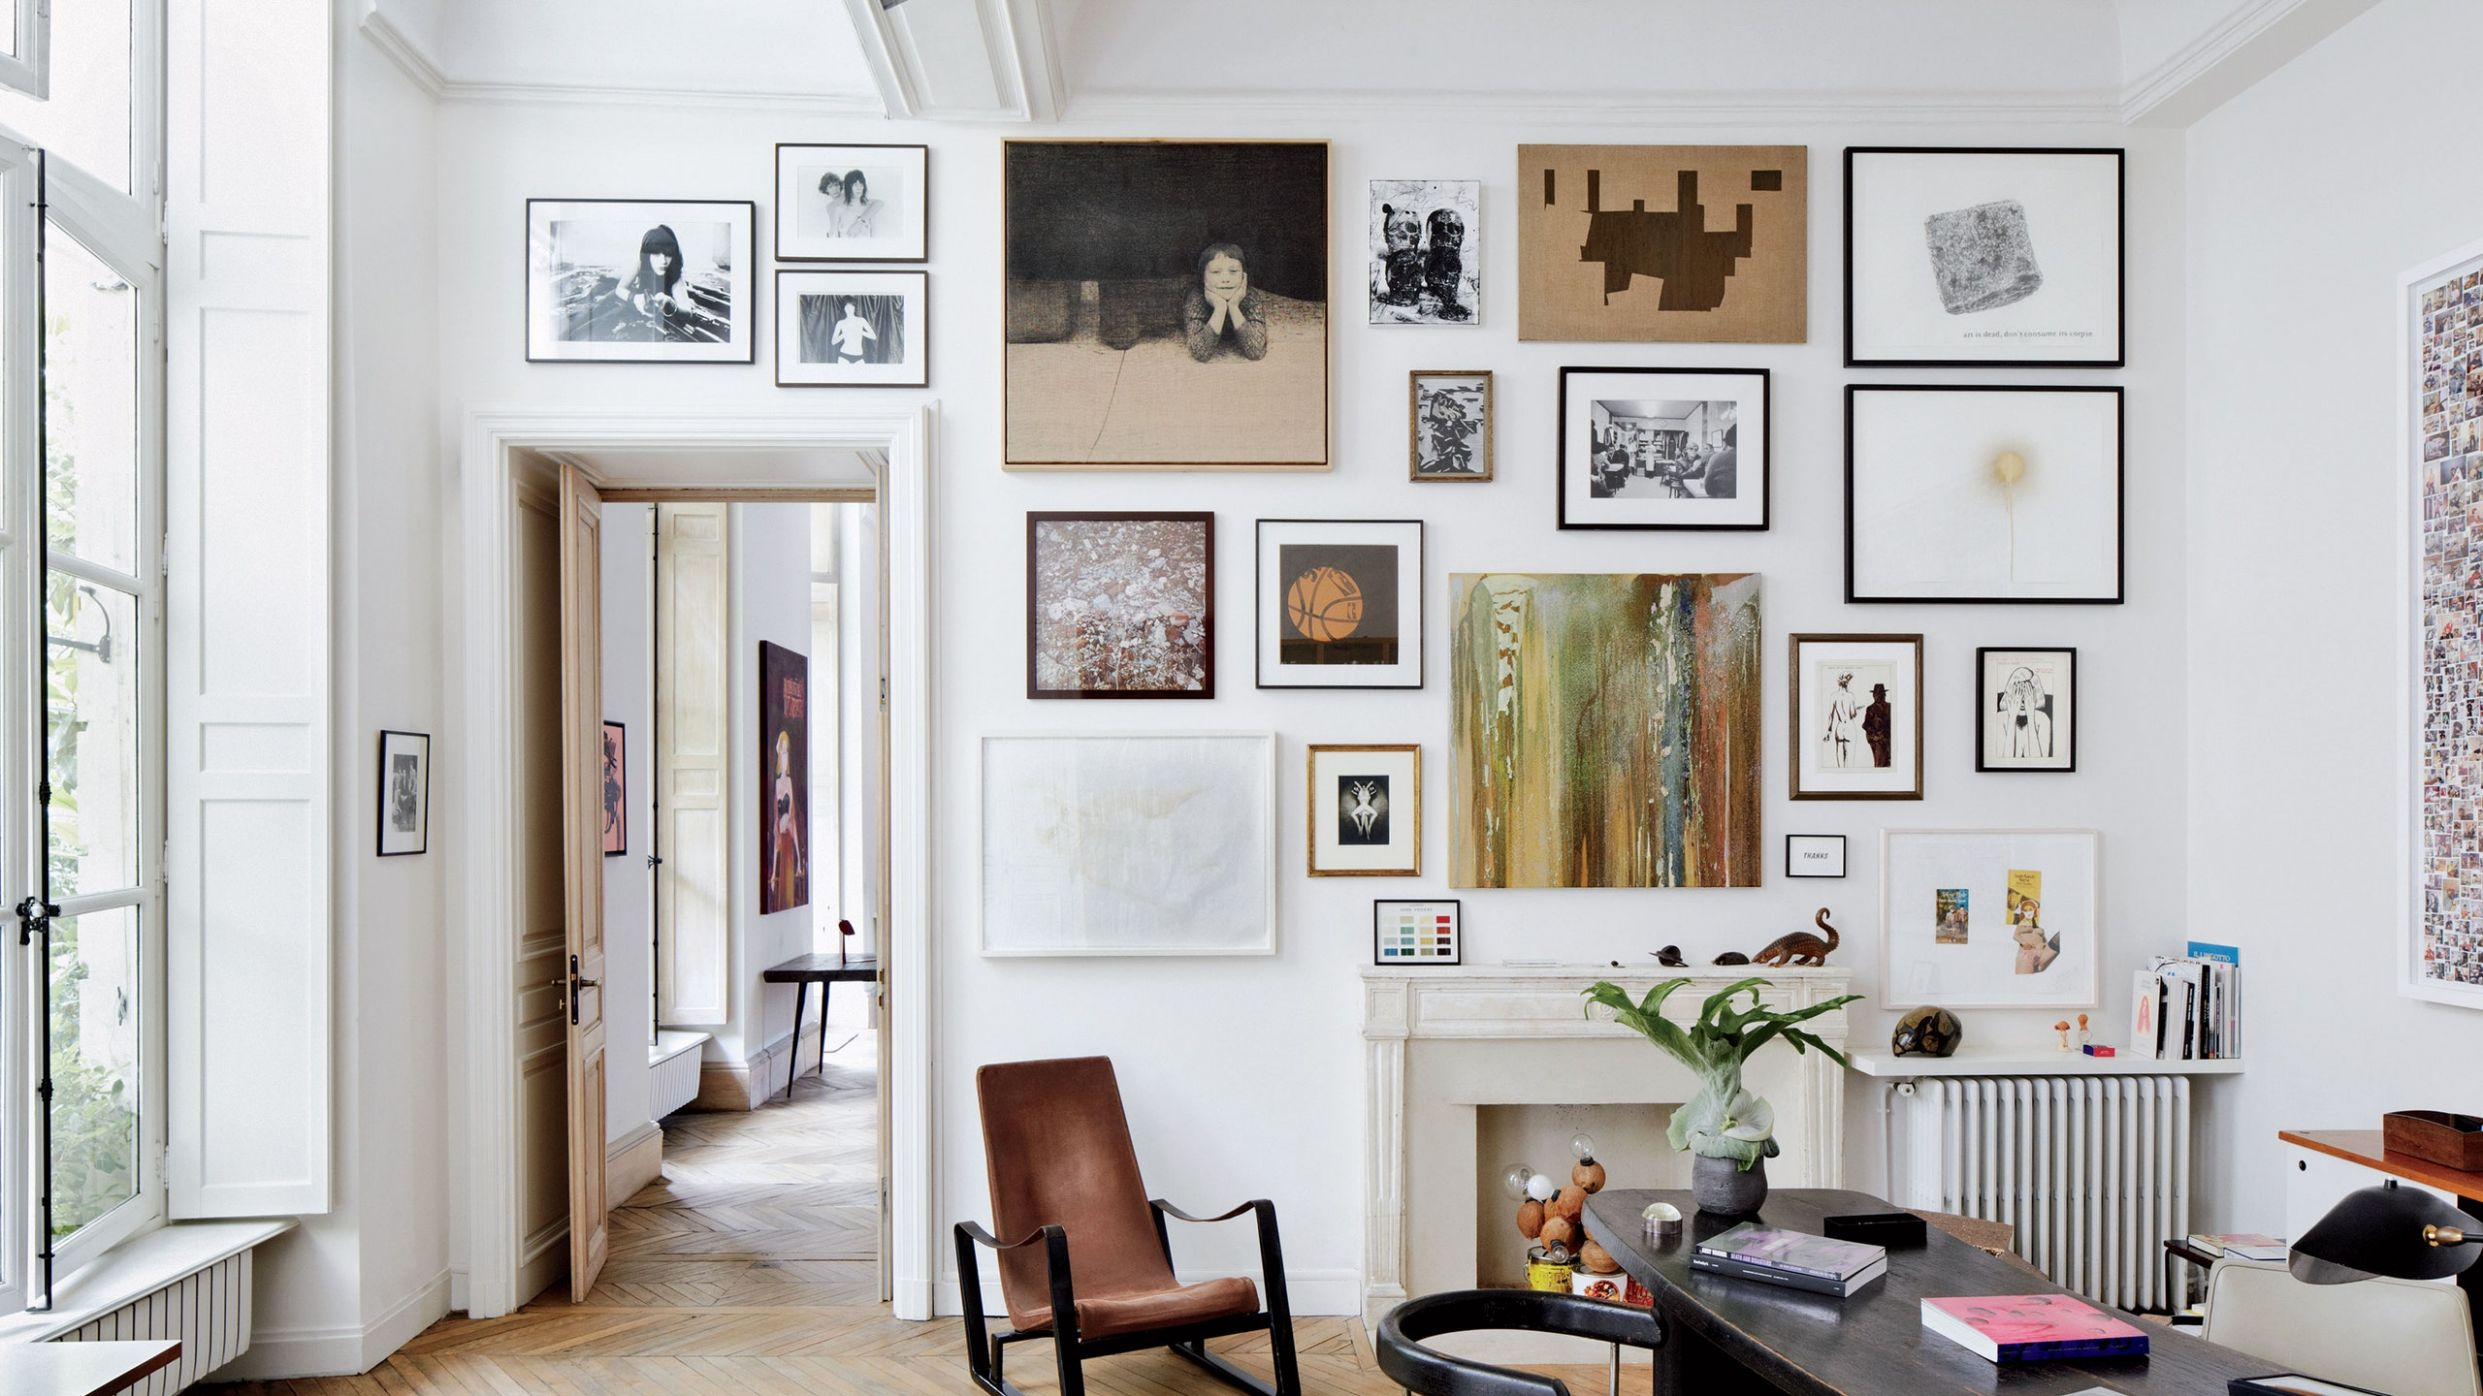 9 Wall Decor Ideas to Refresh Your Space | Architectural Digest - wall decor ideas with frames